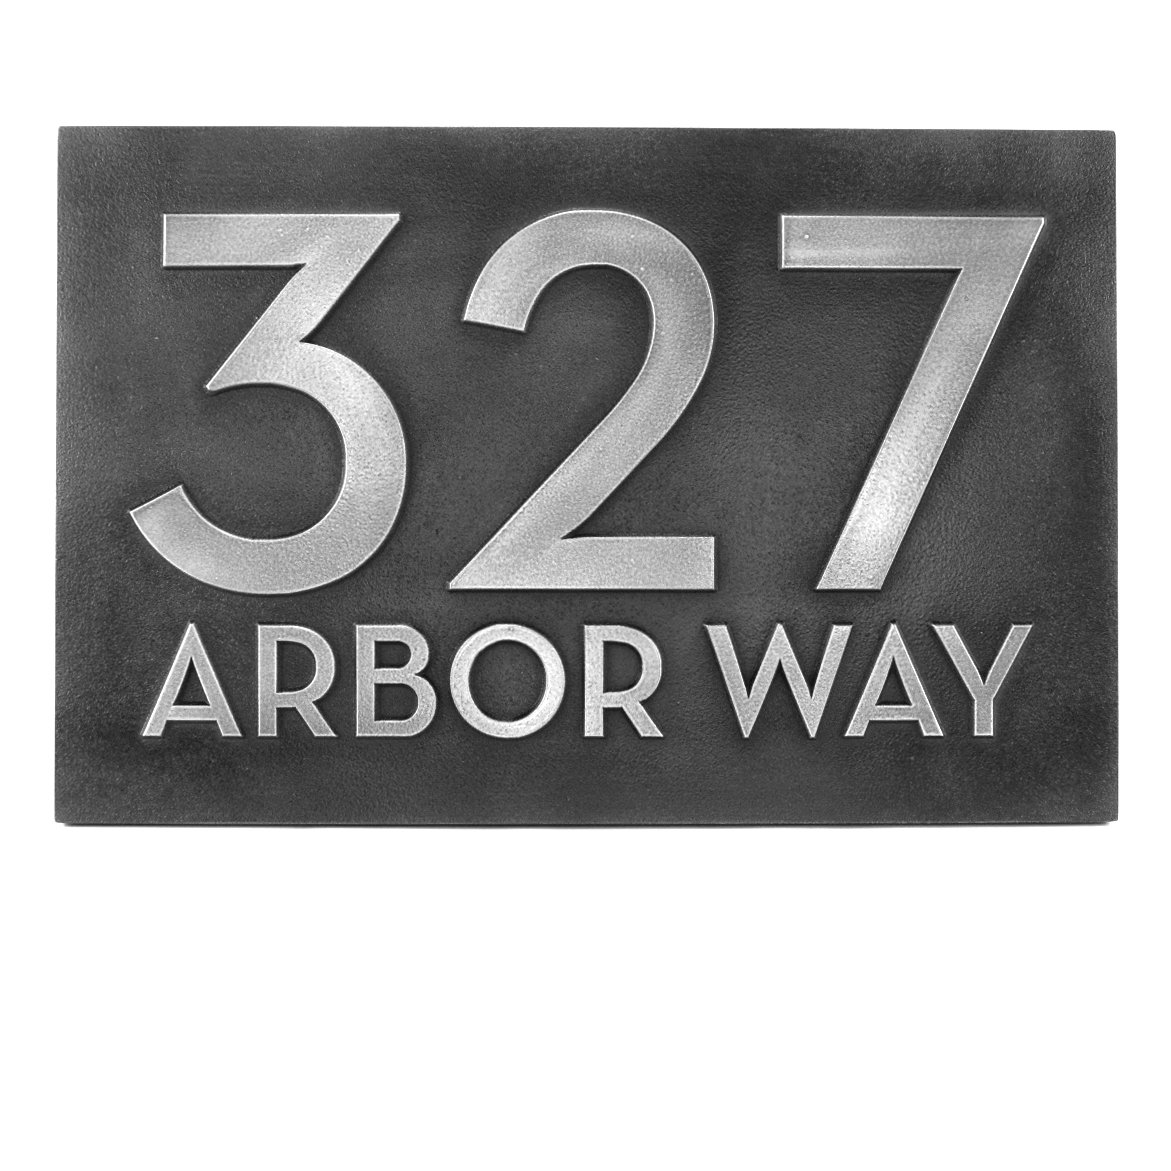 Big Bold Classy Modern Font Horizontal Number and Street Home Address Plaque 13x8.5 - Pewter Metal Coated with Raised lettering style